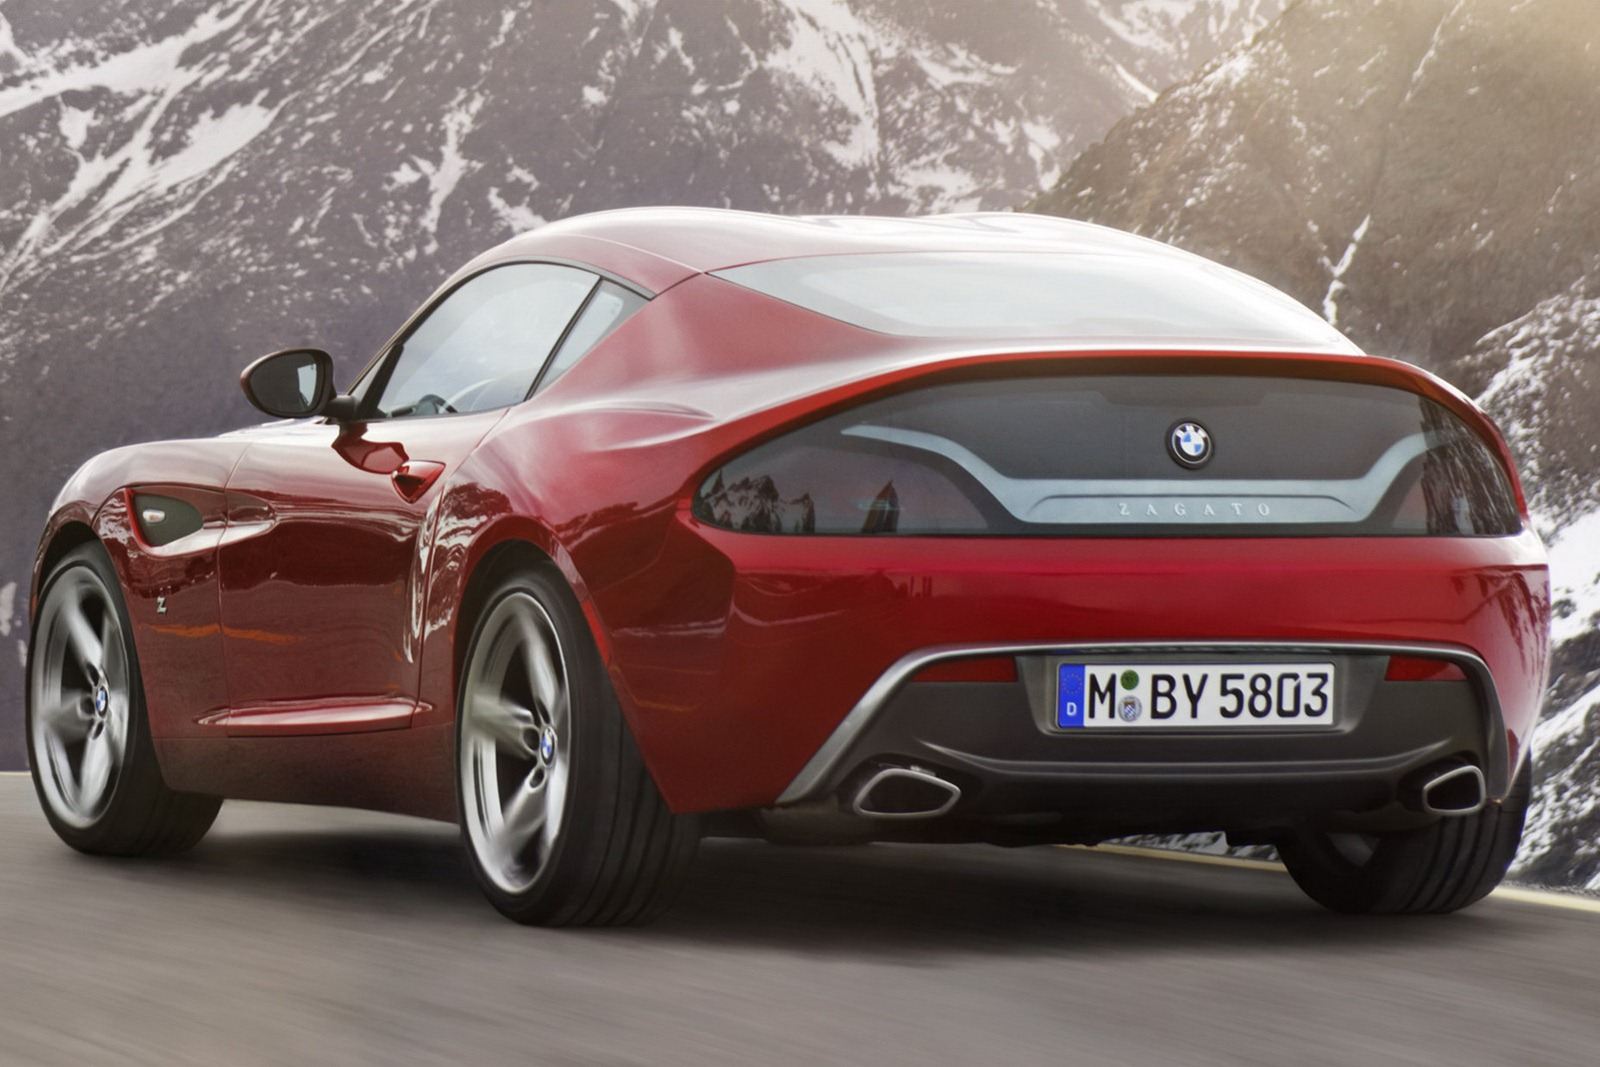 Meet the Best Looking Modern BMW - The Z4 Zagato - autoevolution